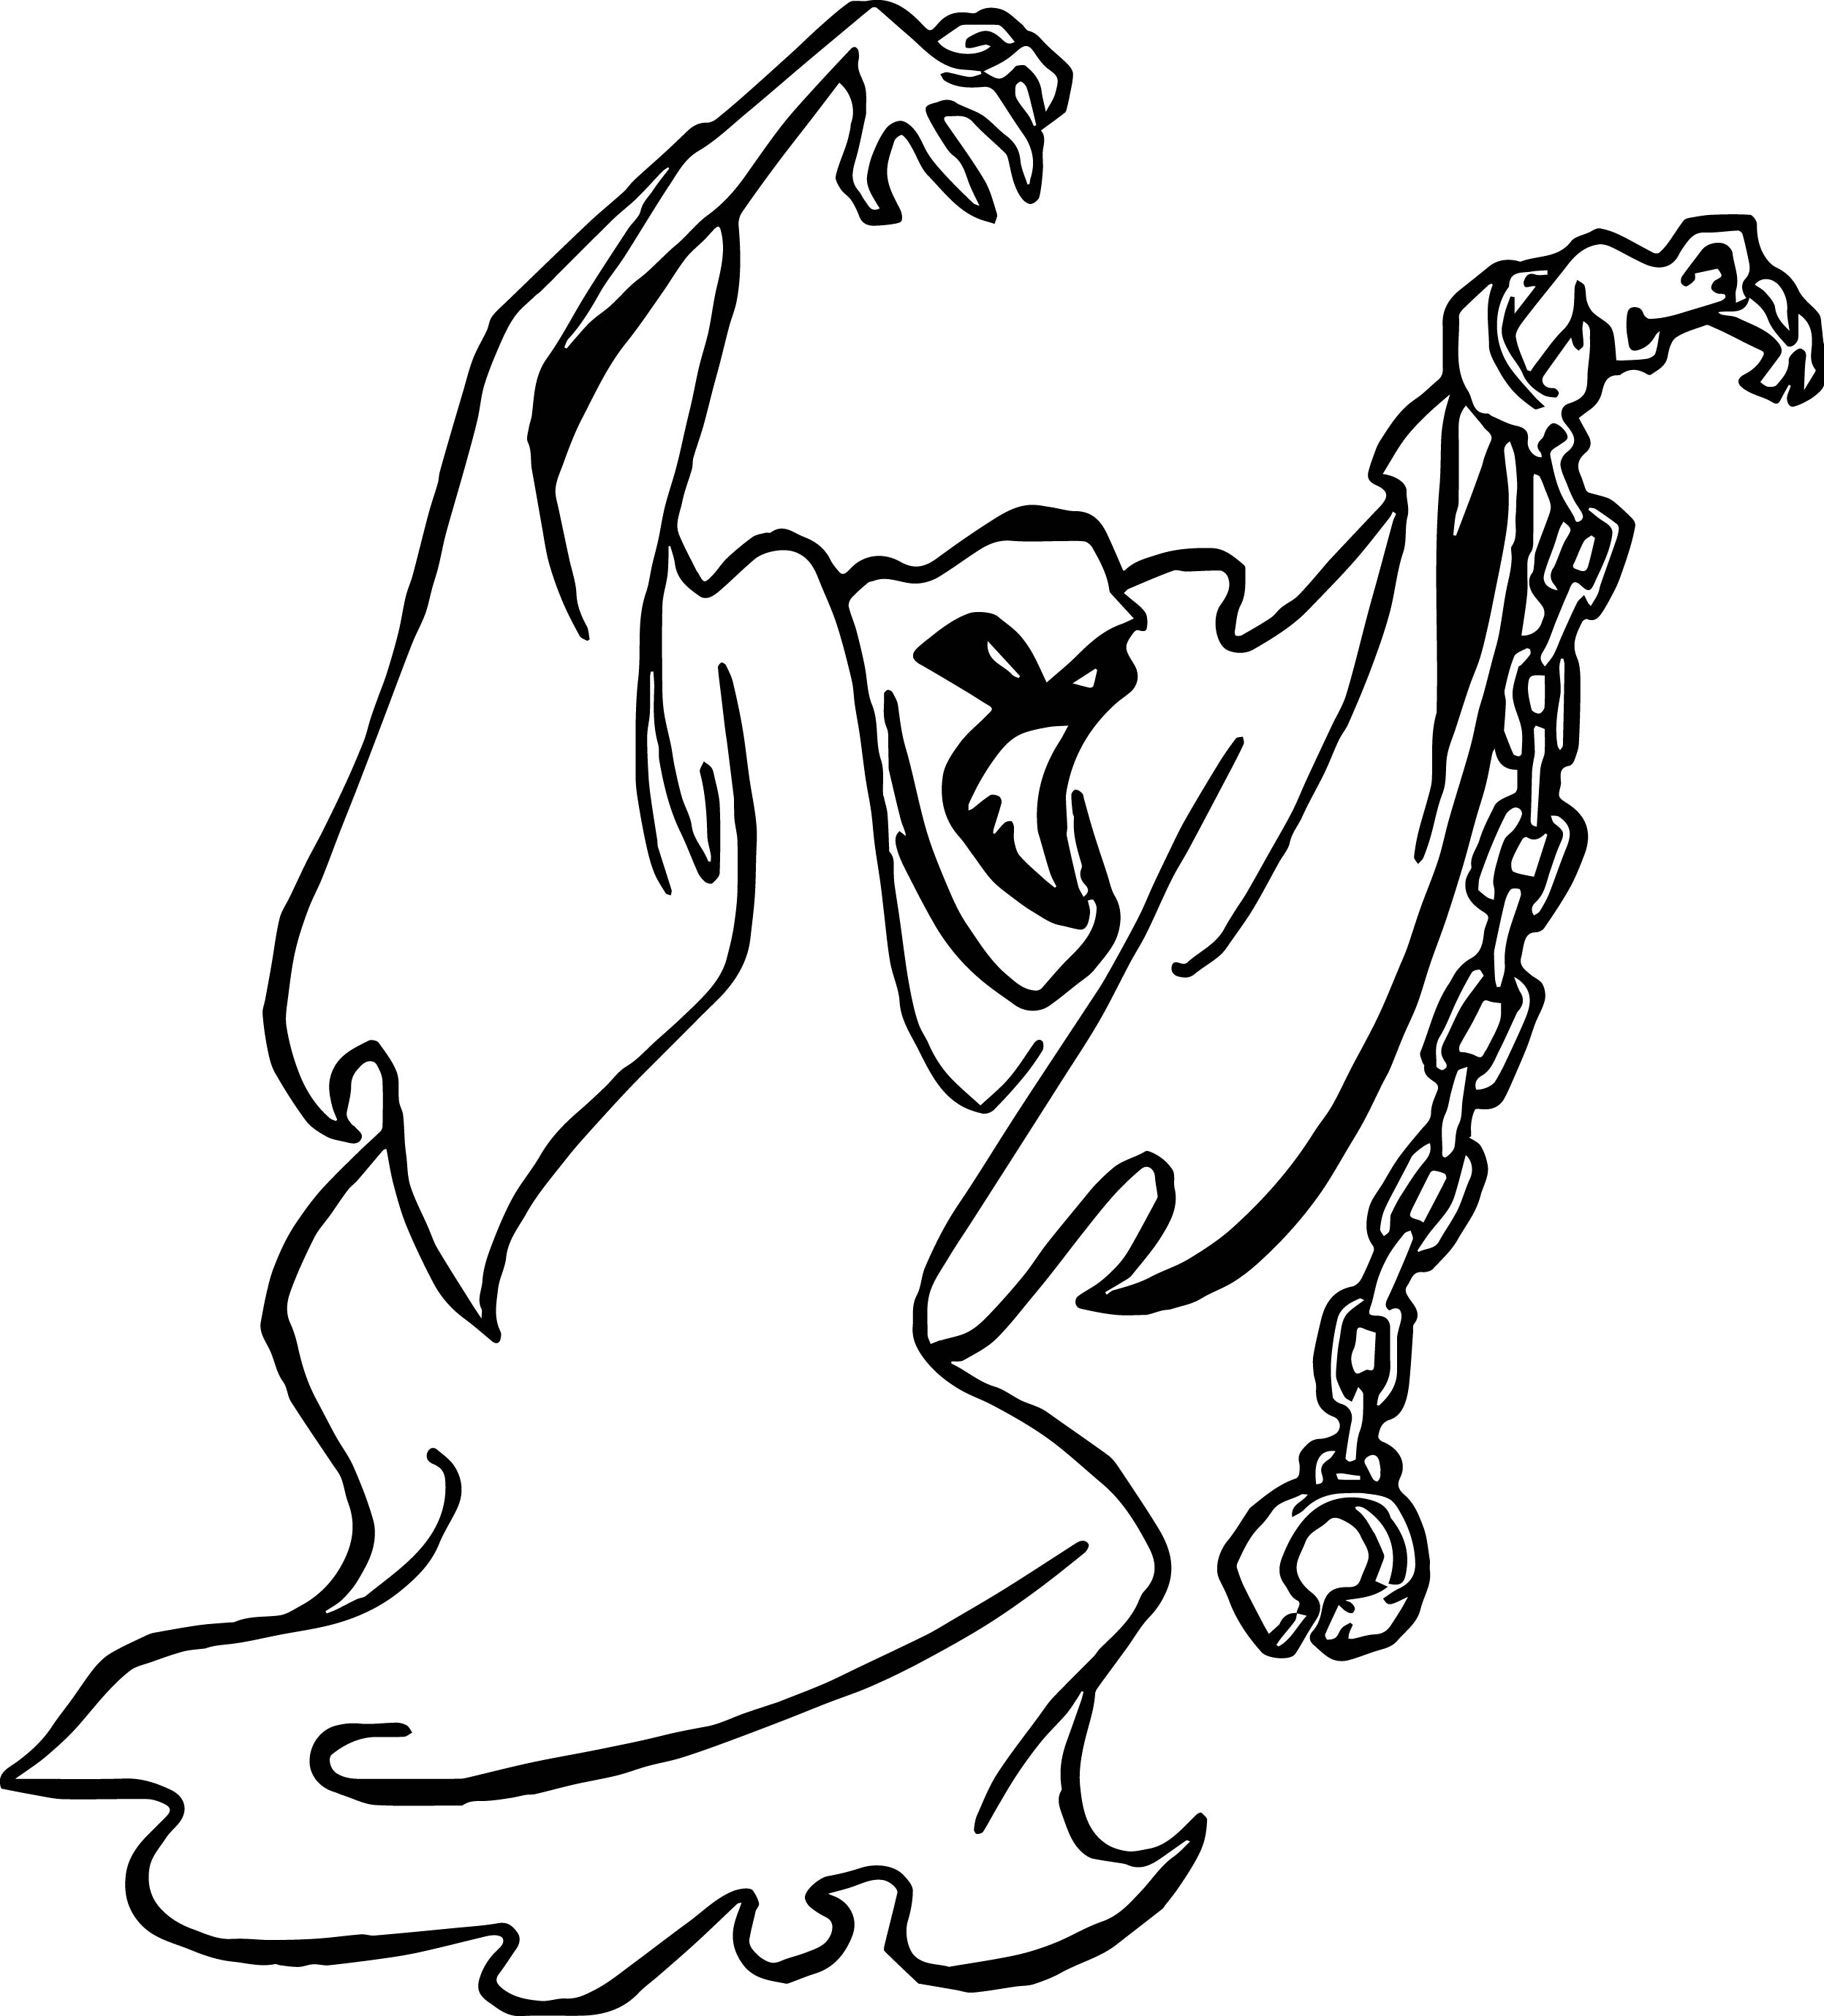 ghost scooby doo coloring page - Scooby Doo Pictures To Colour